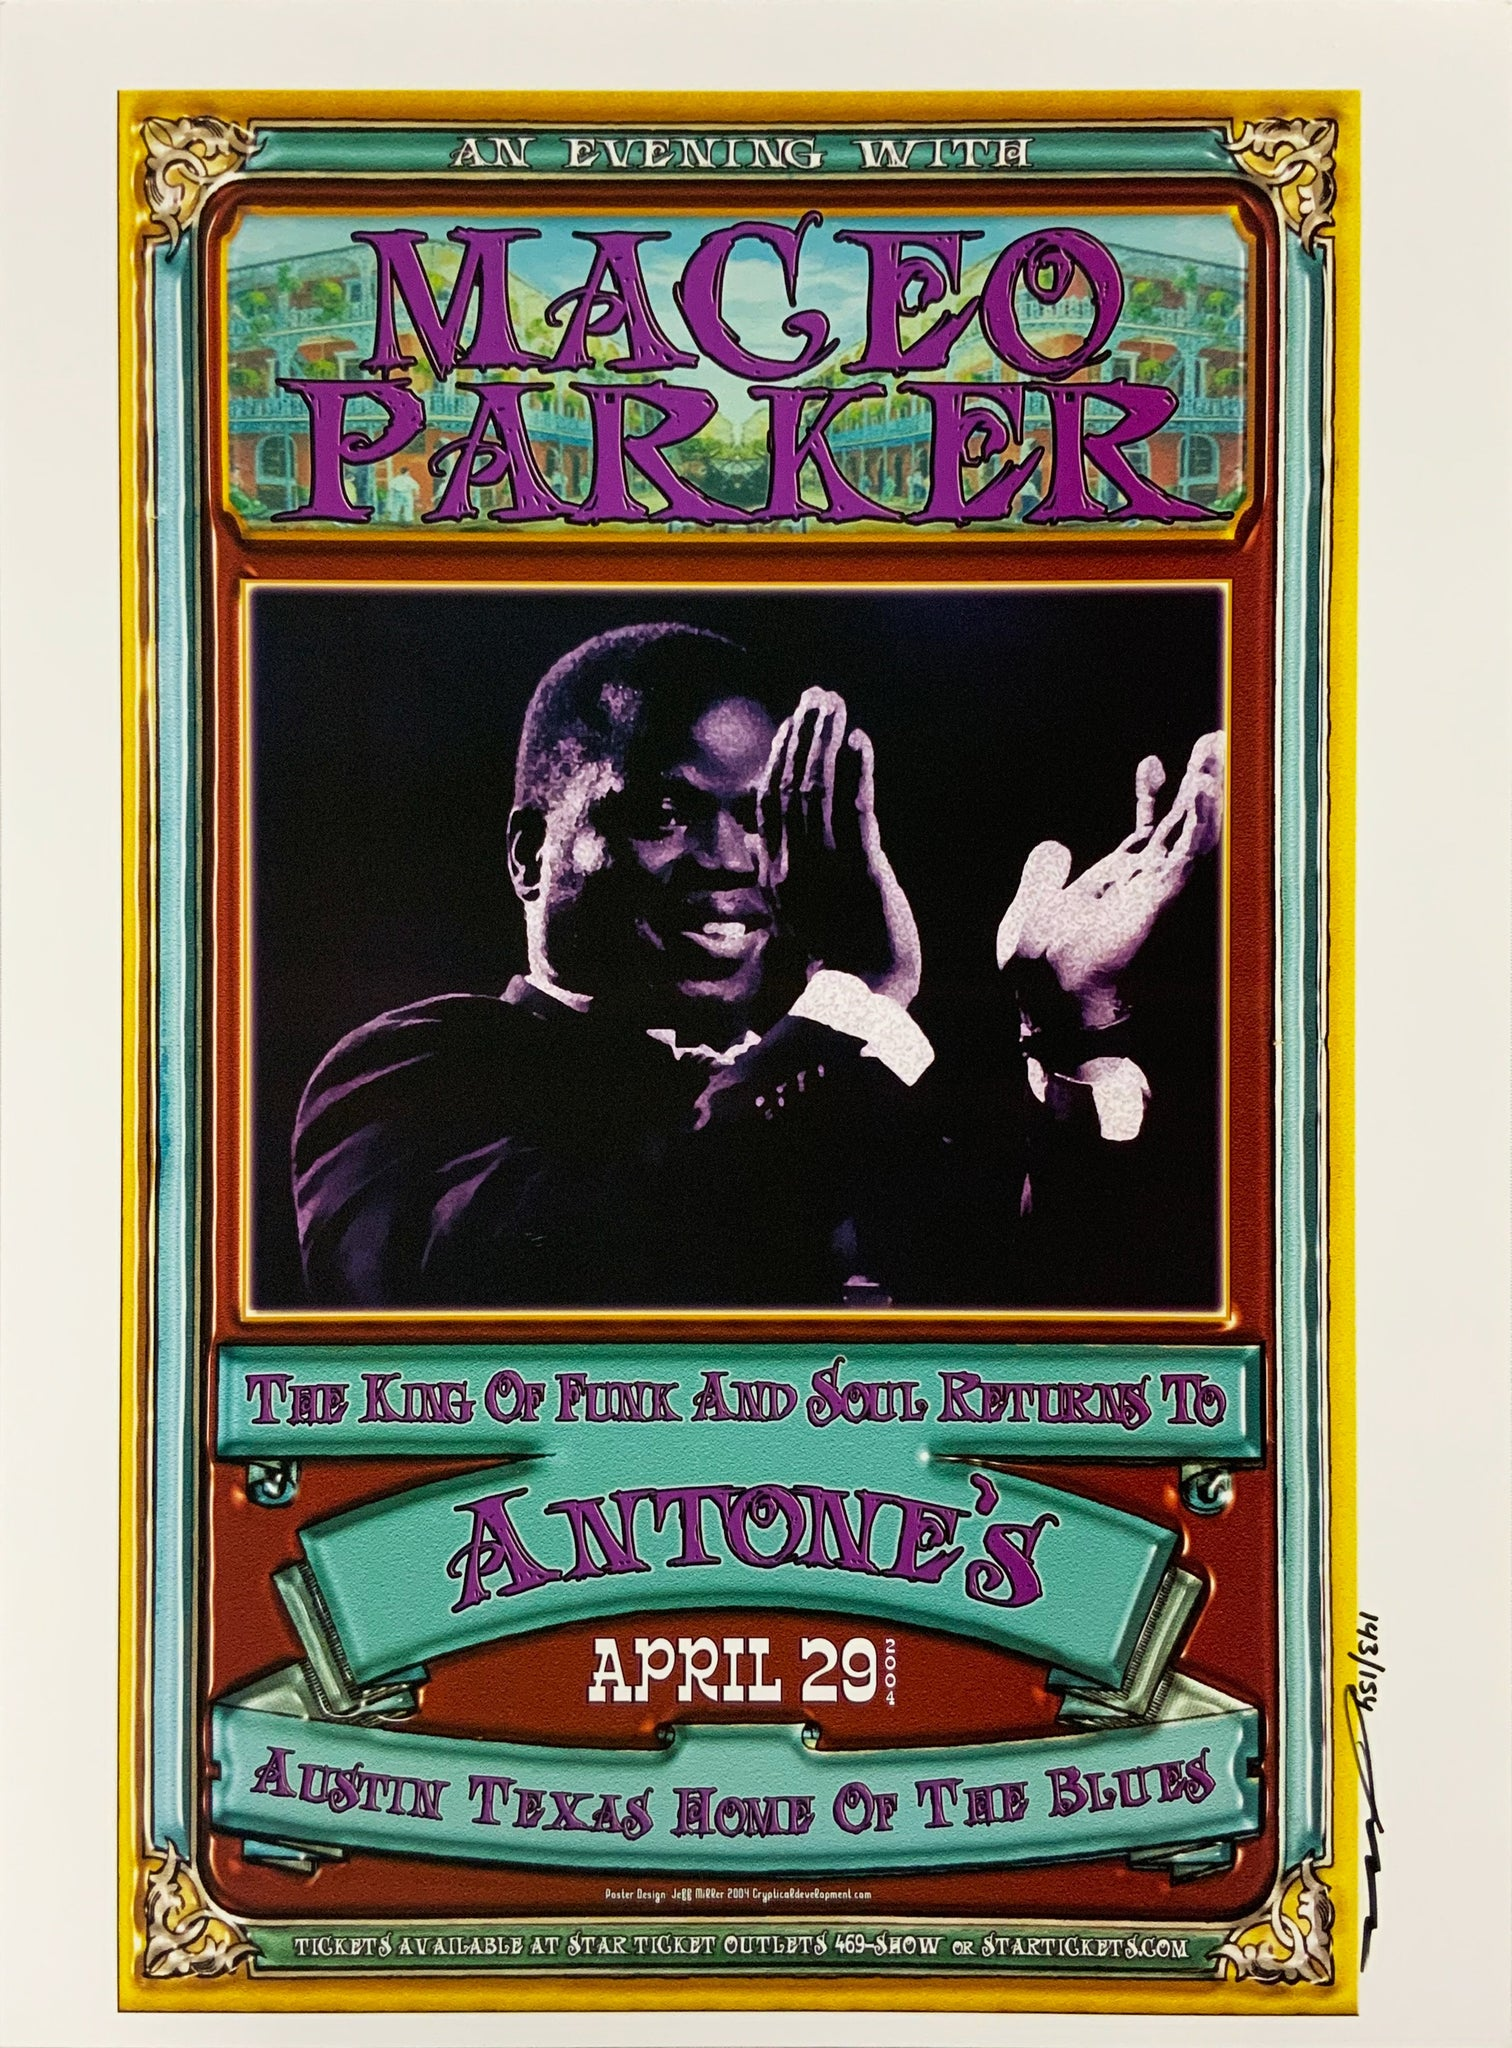 Maceo Parker 2004 Antone's April 29th Signed Poster